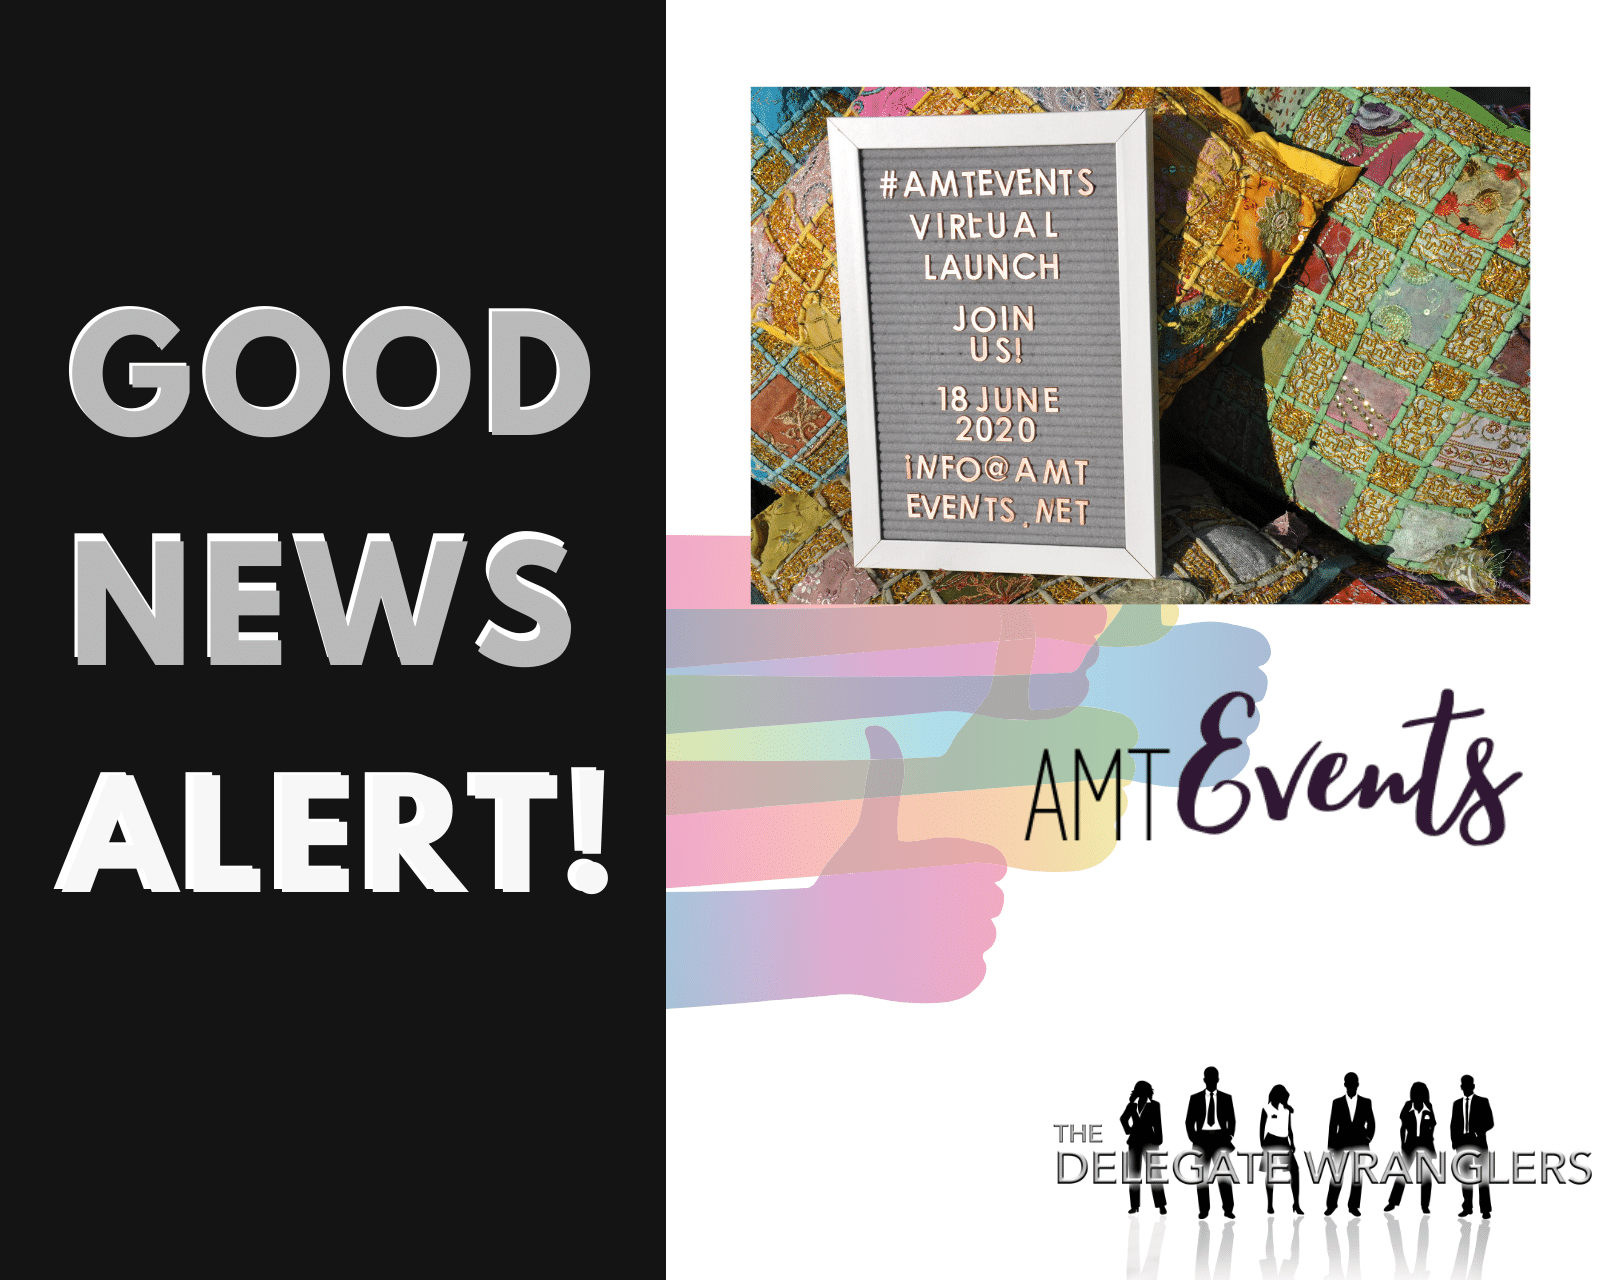 AMTEvents to launch - virtually!